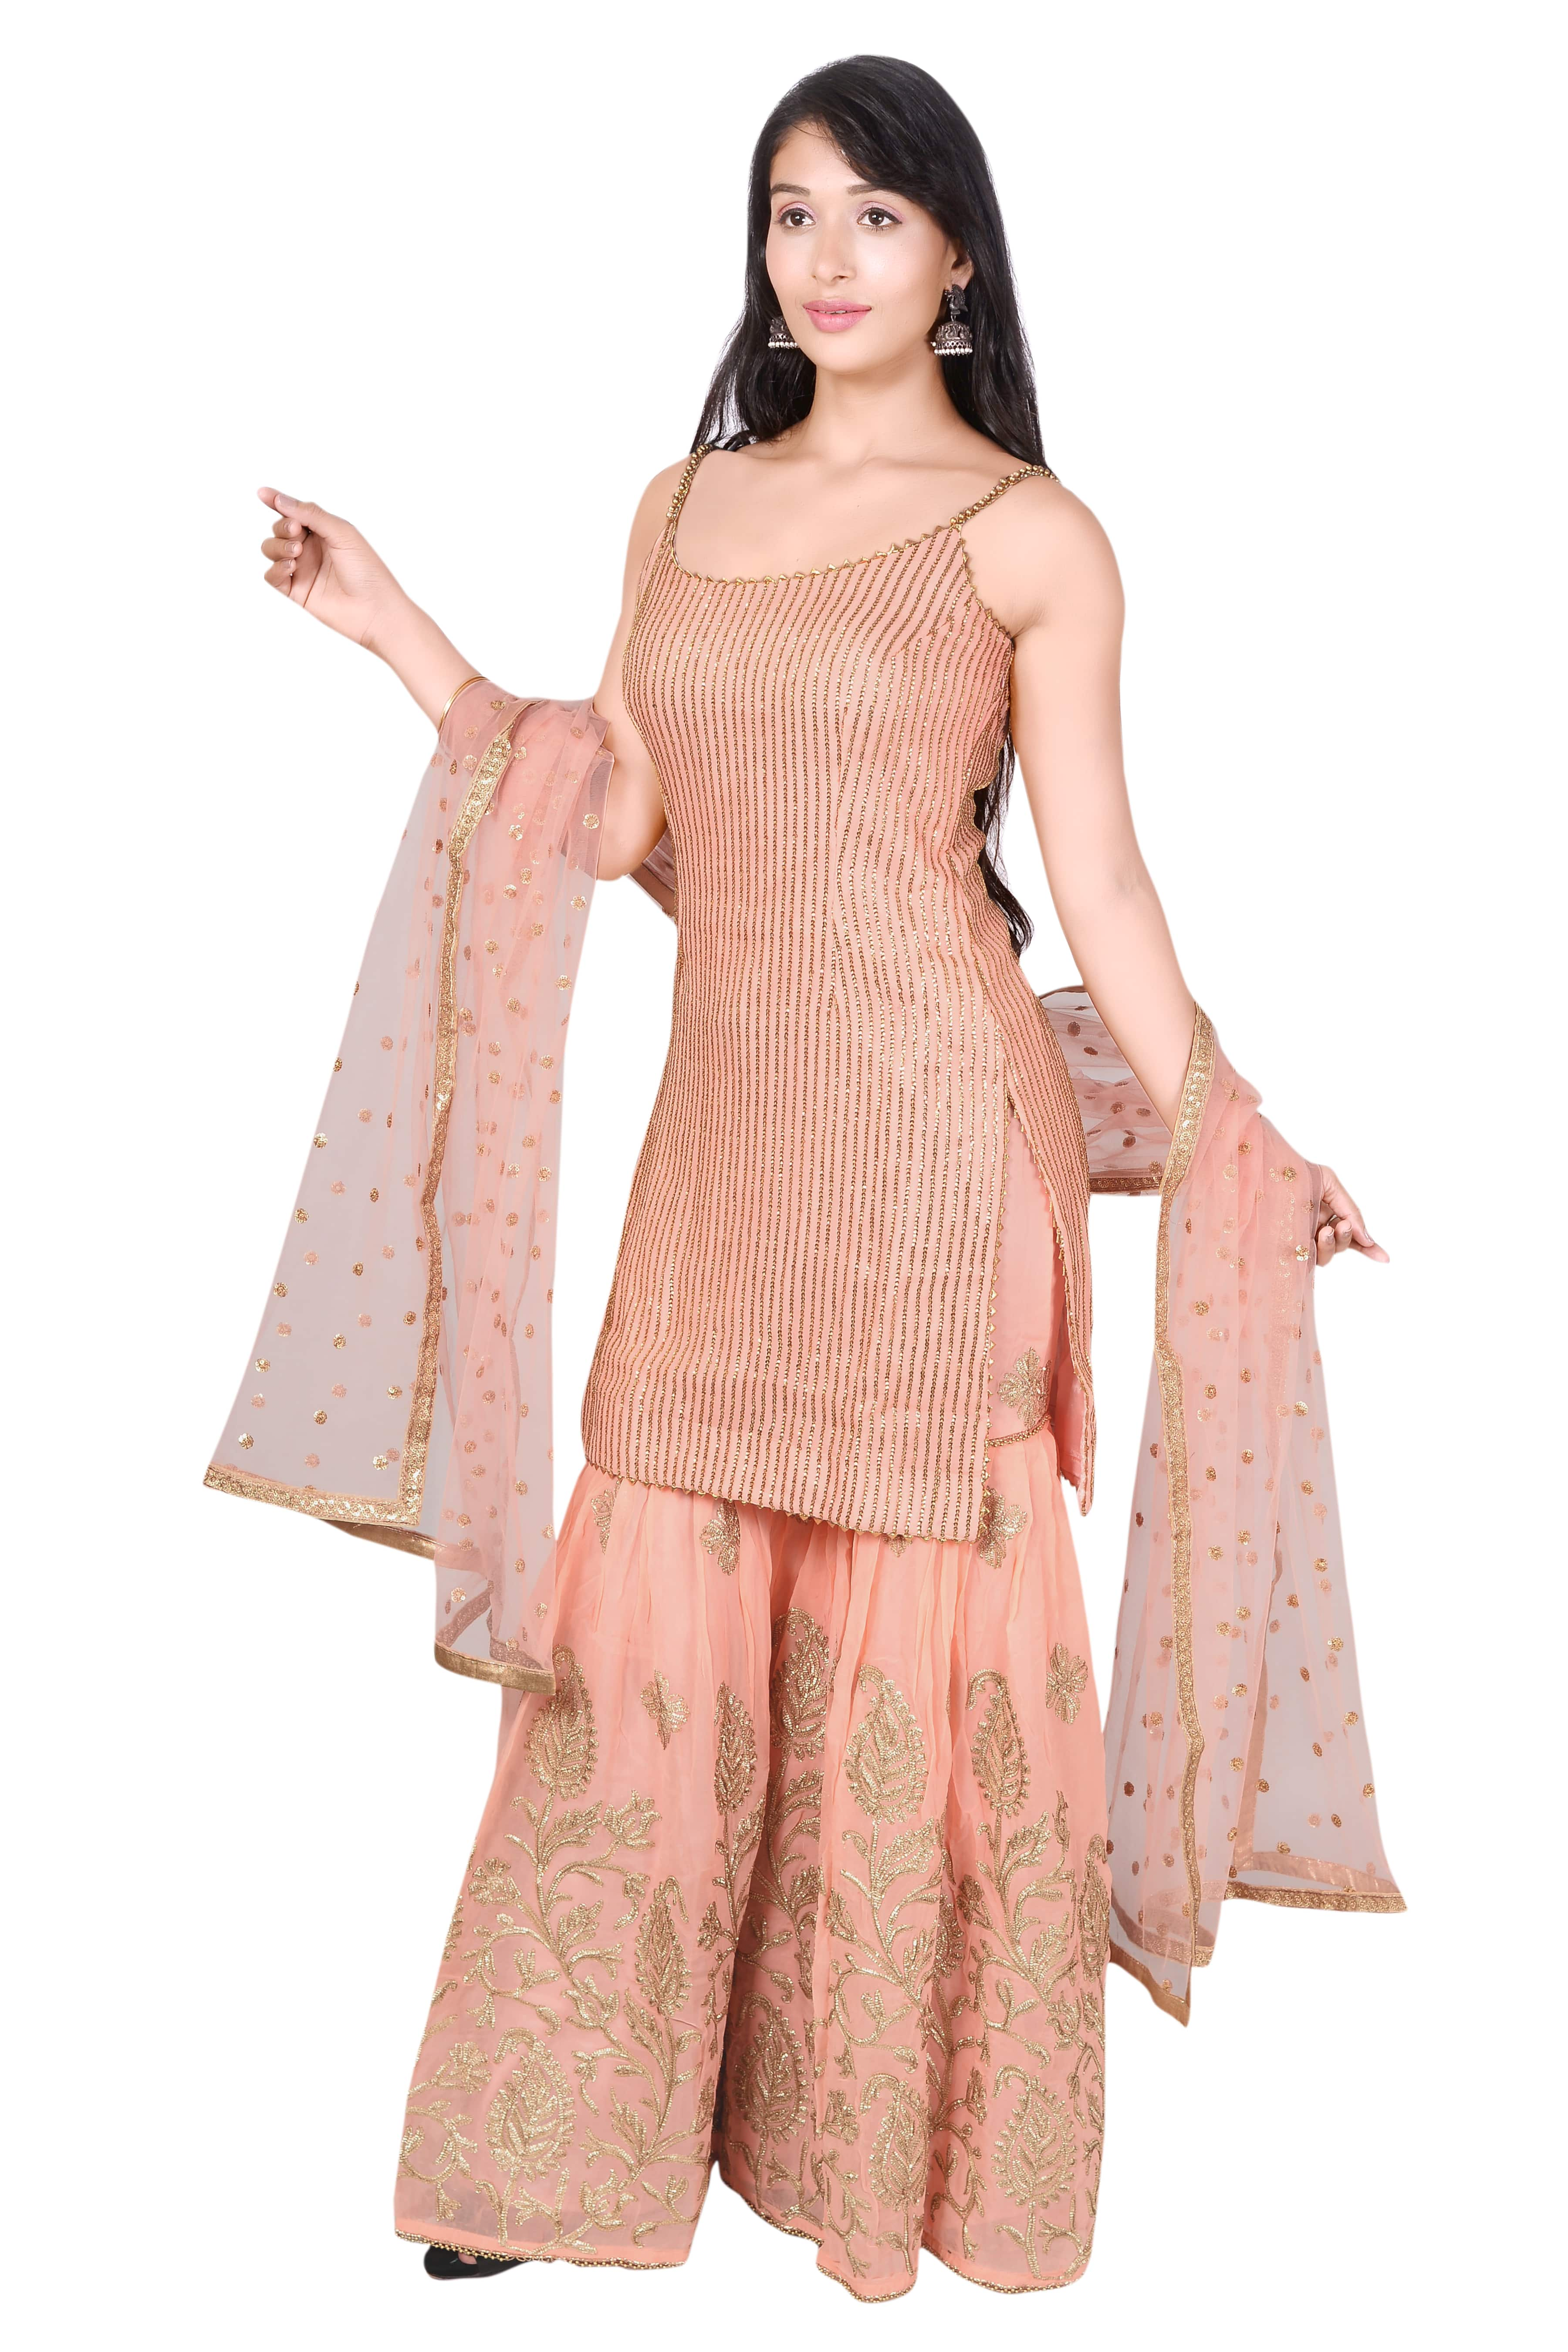 Designer Sharara Suits Suppliers